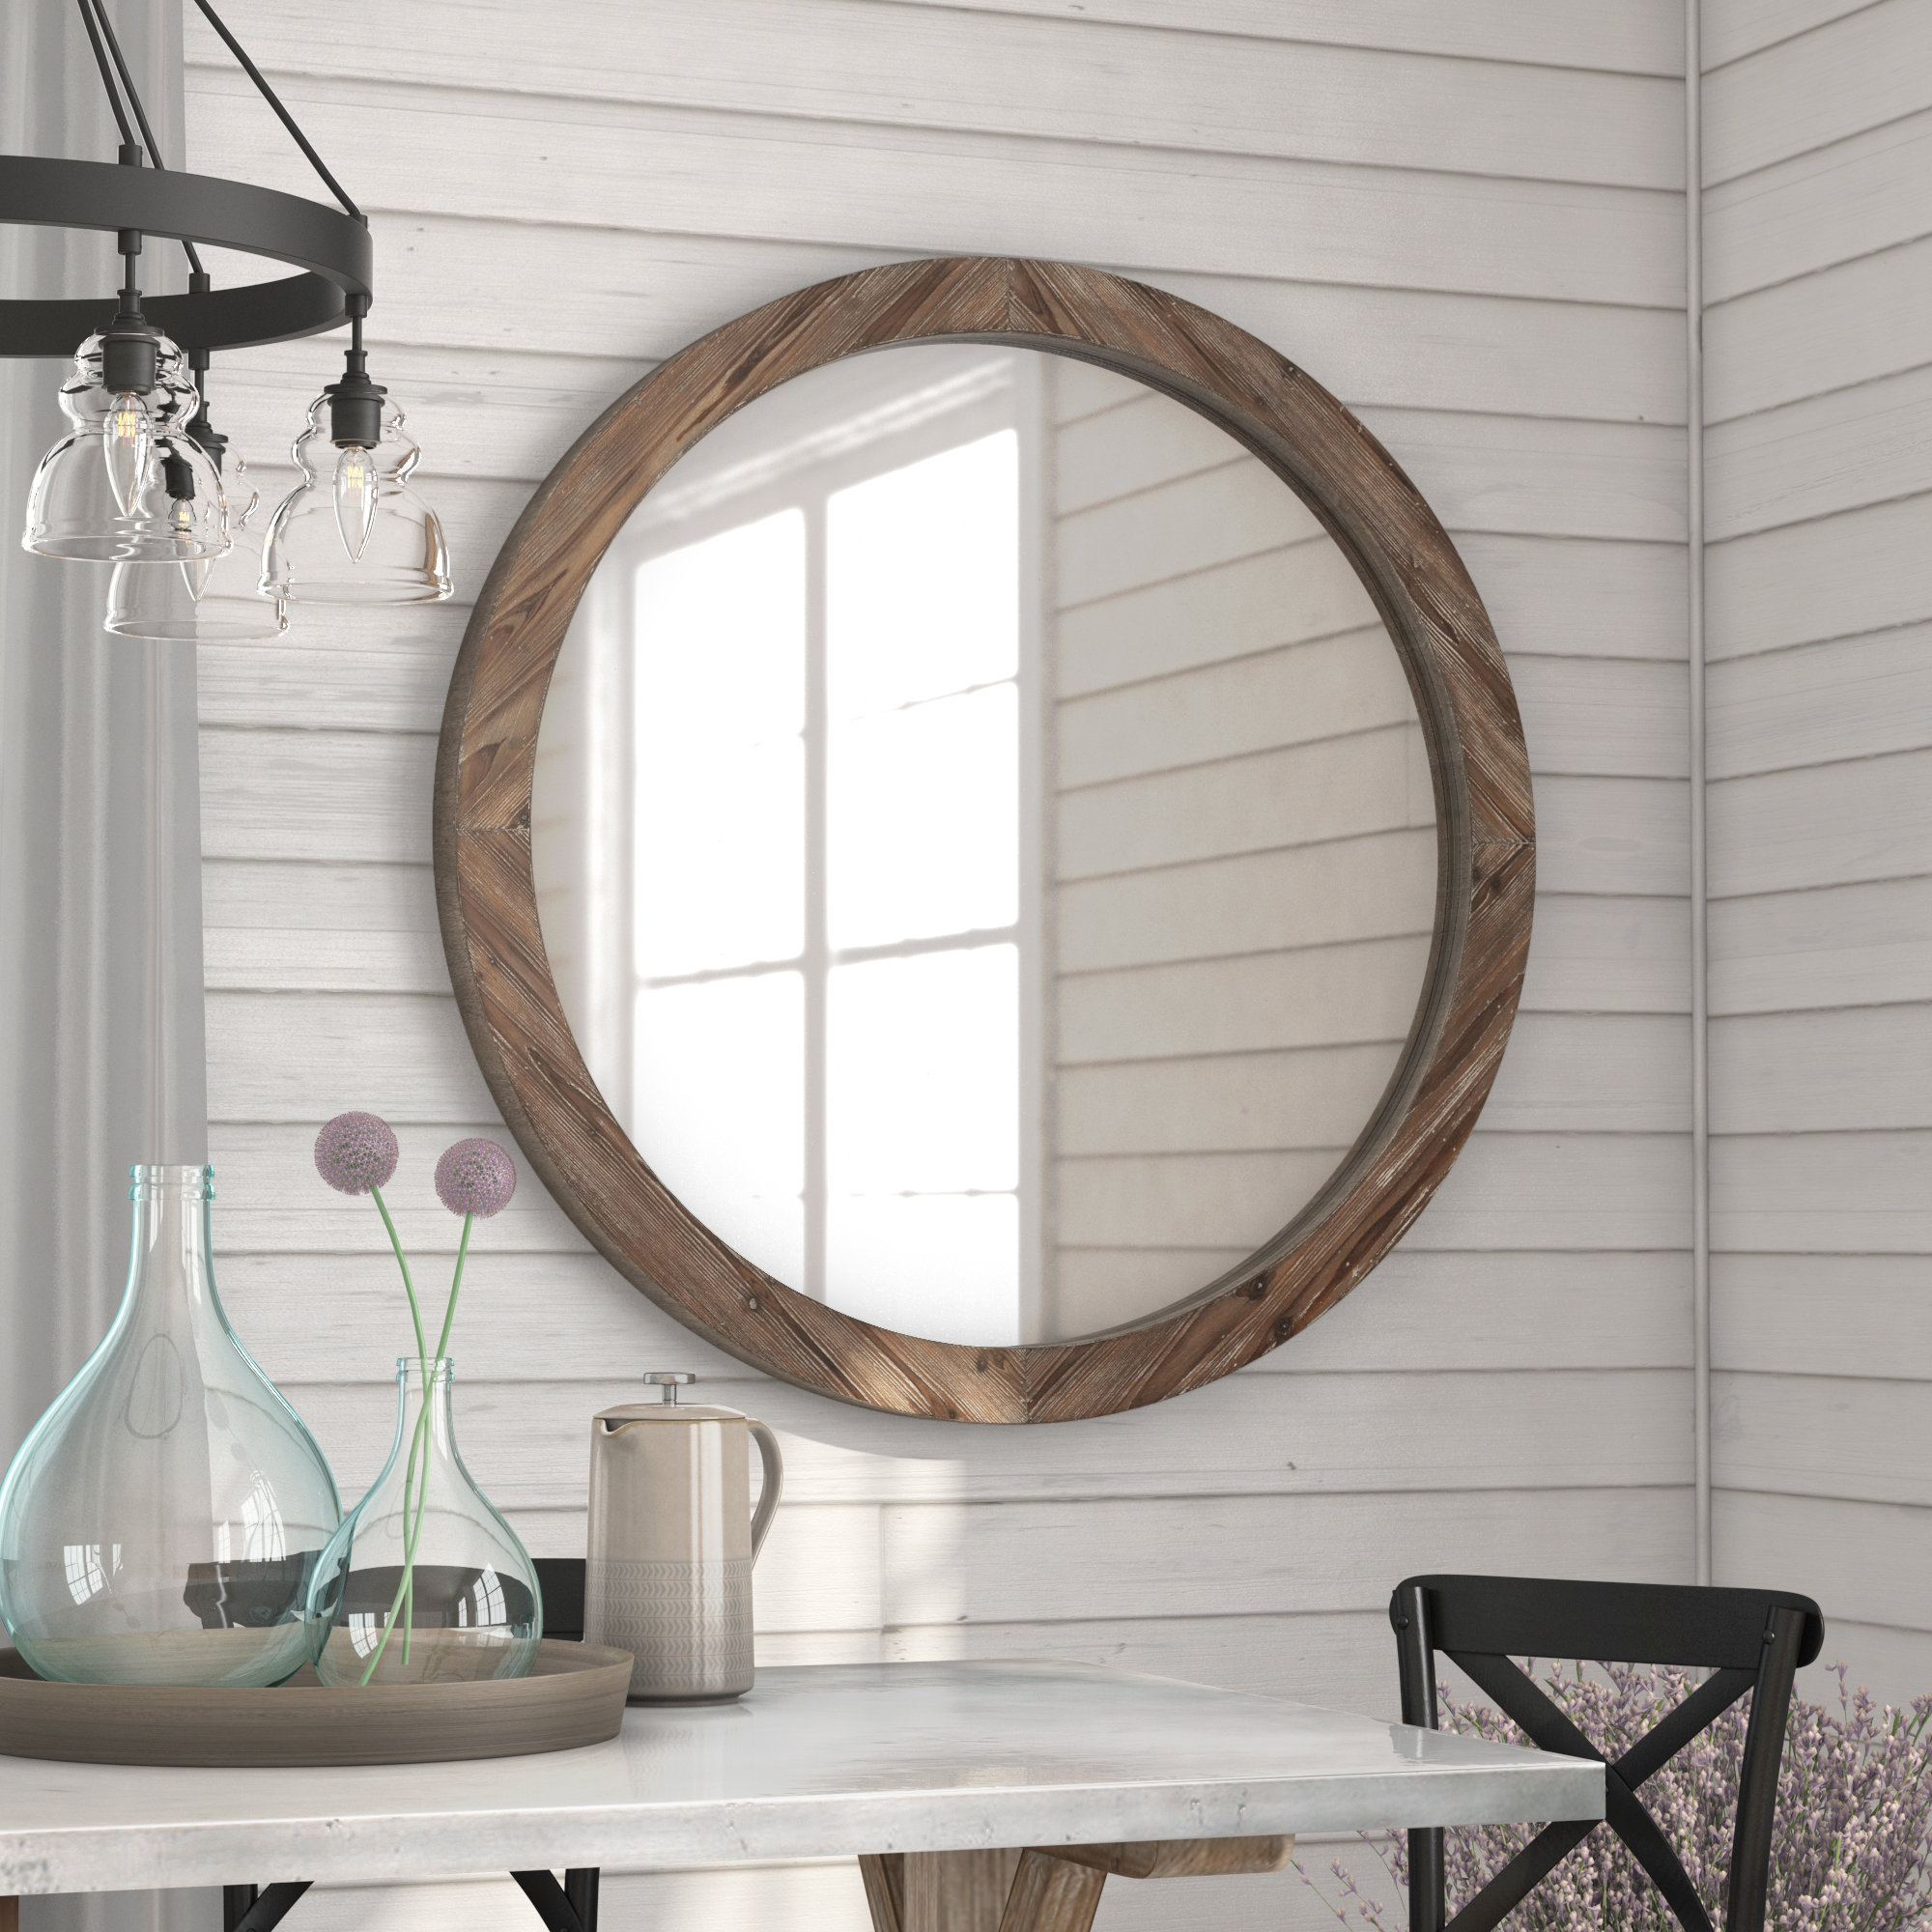 Farmhouse & Rustic Union Rustic Wall & Accent Mirrors For Perillo Burst Wood Accent Mirrors (Image 9 of 20)